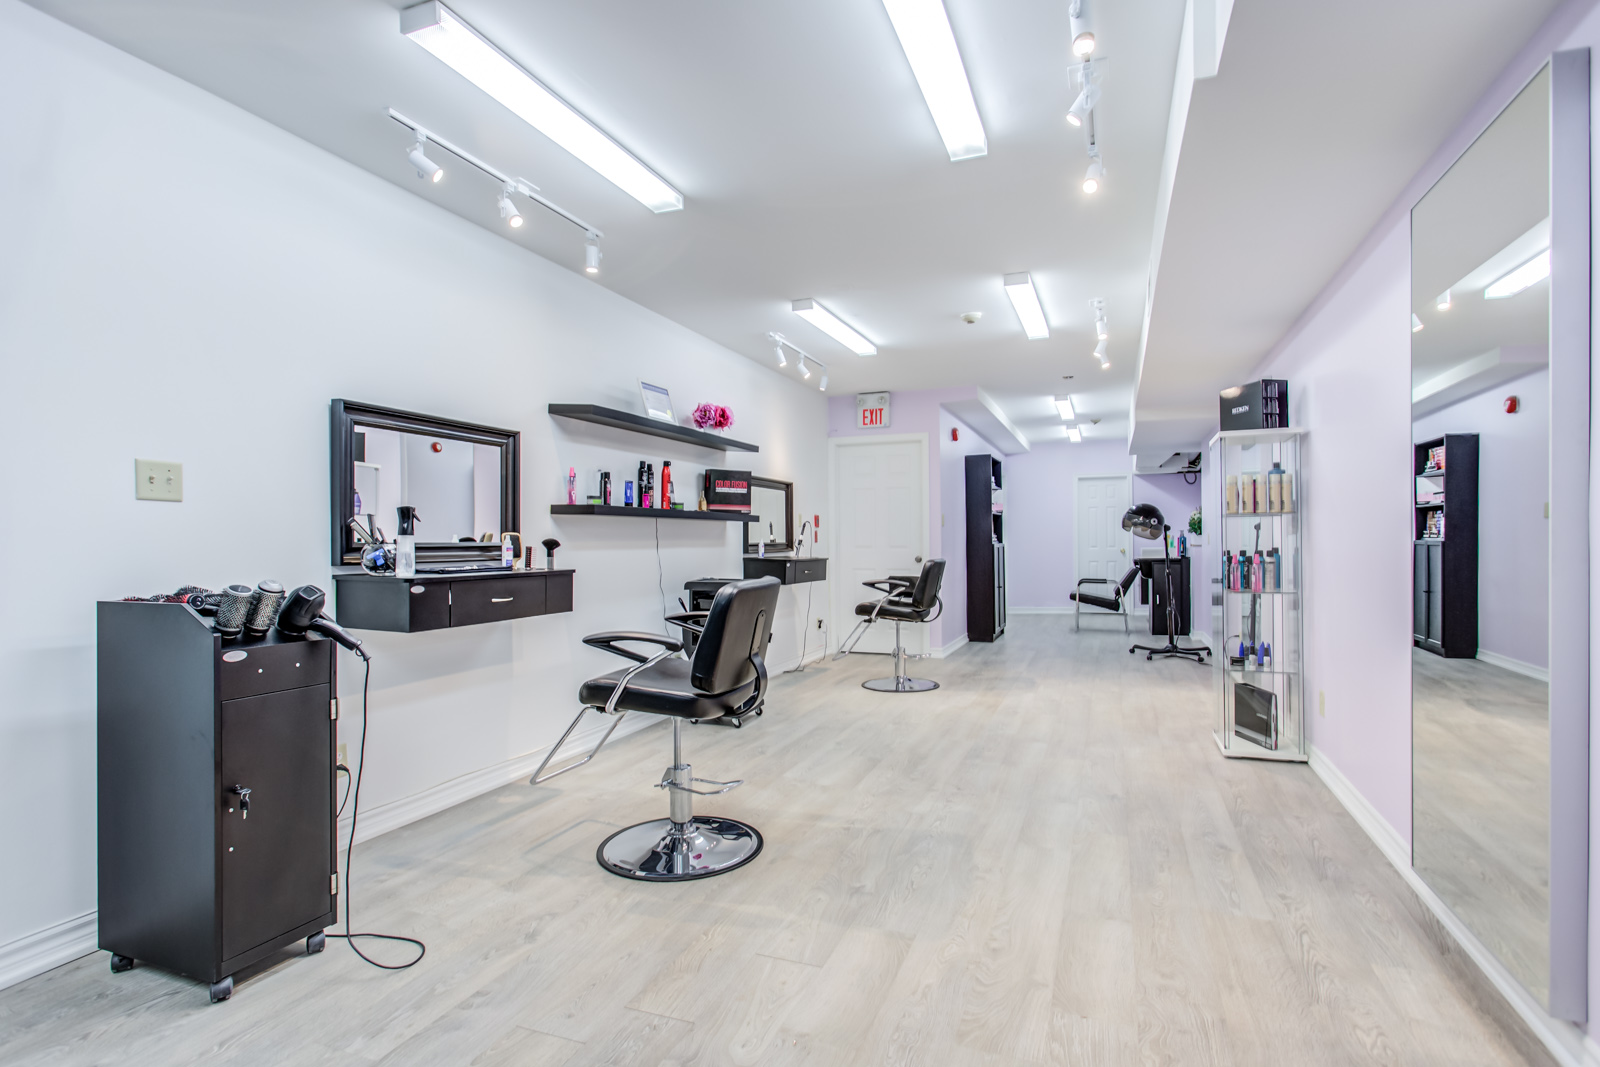 Photo of hair salon inside with everything ready for business.